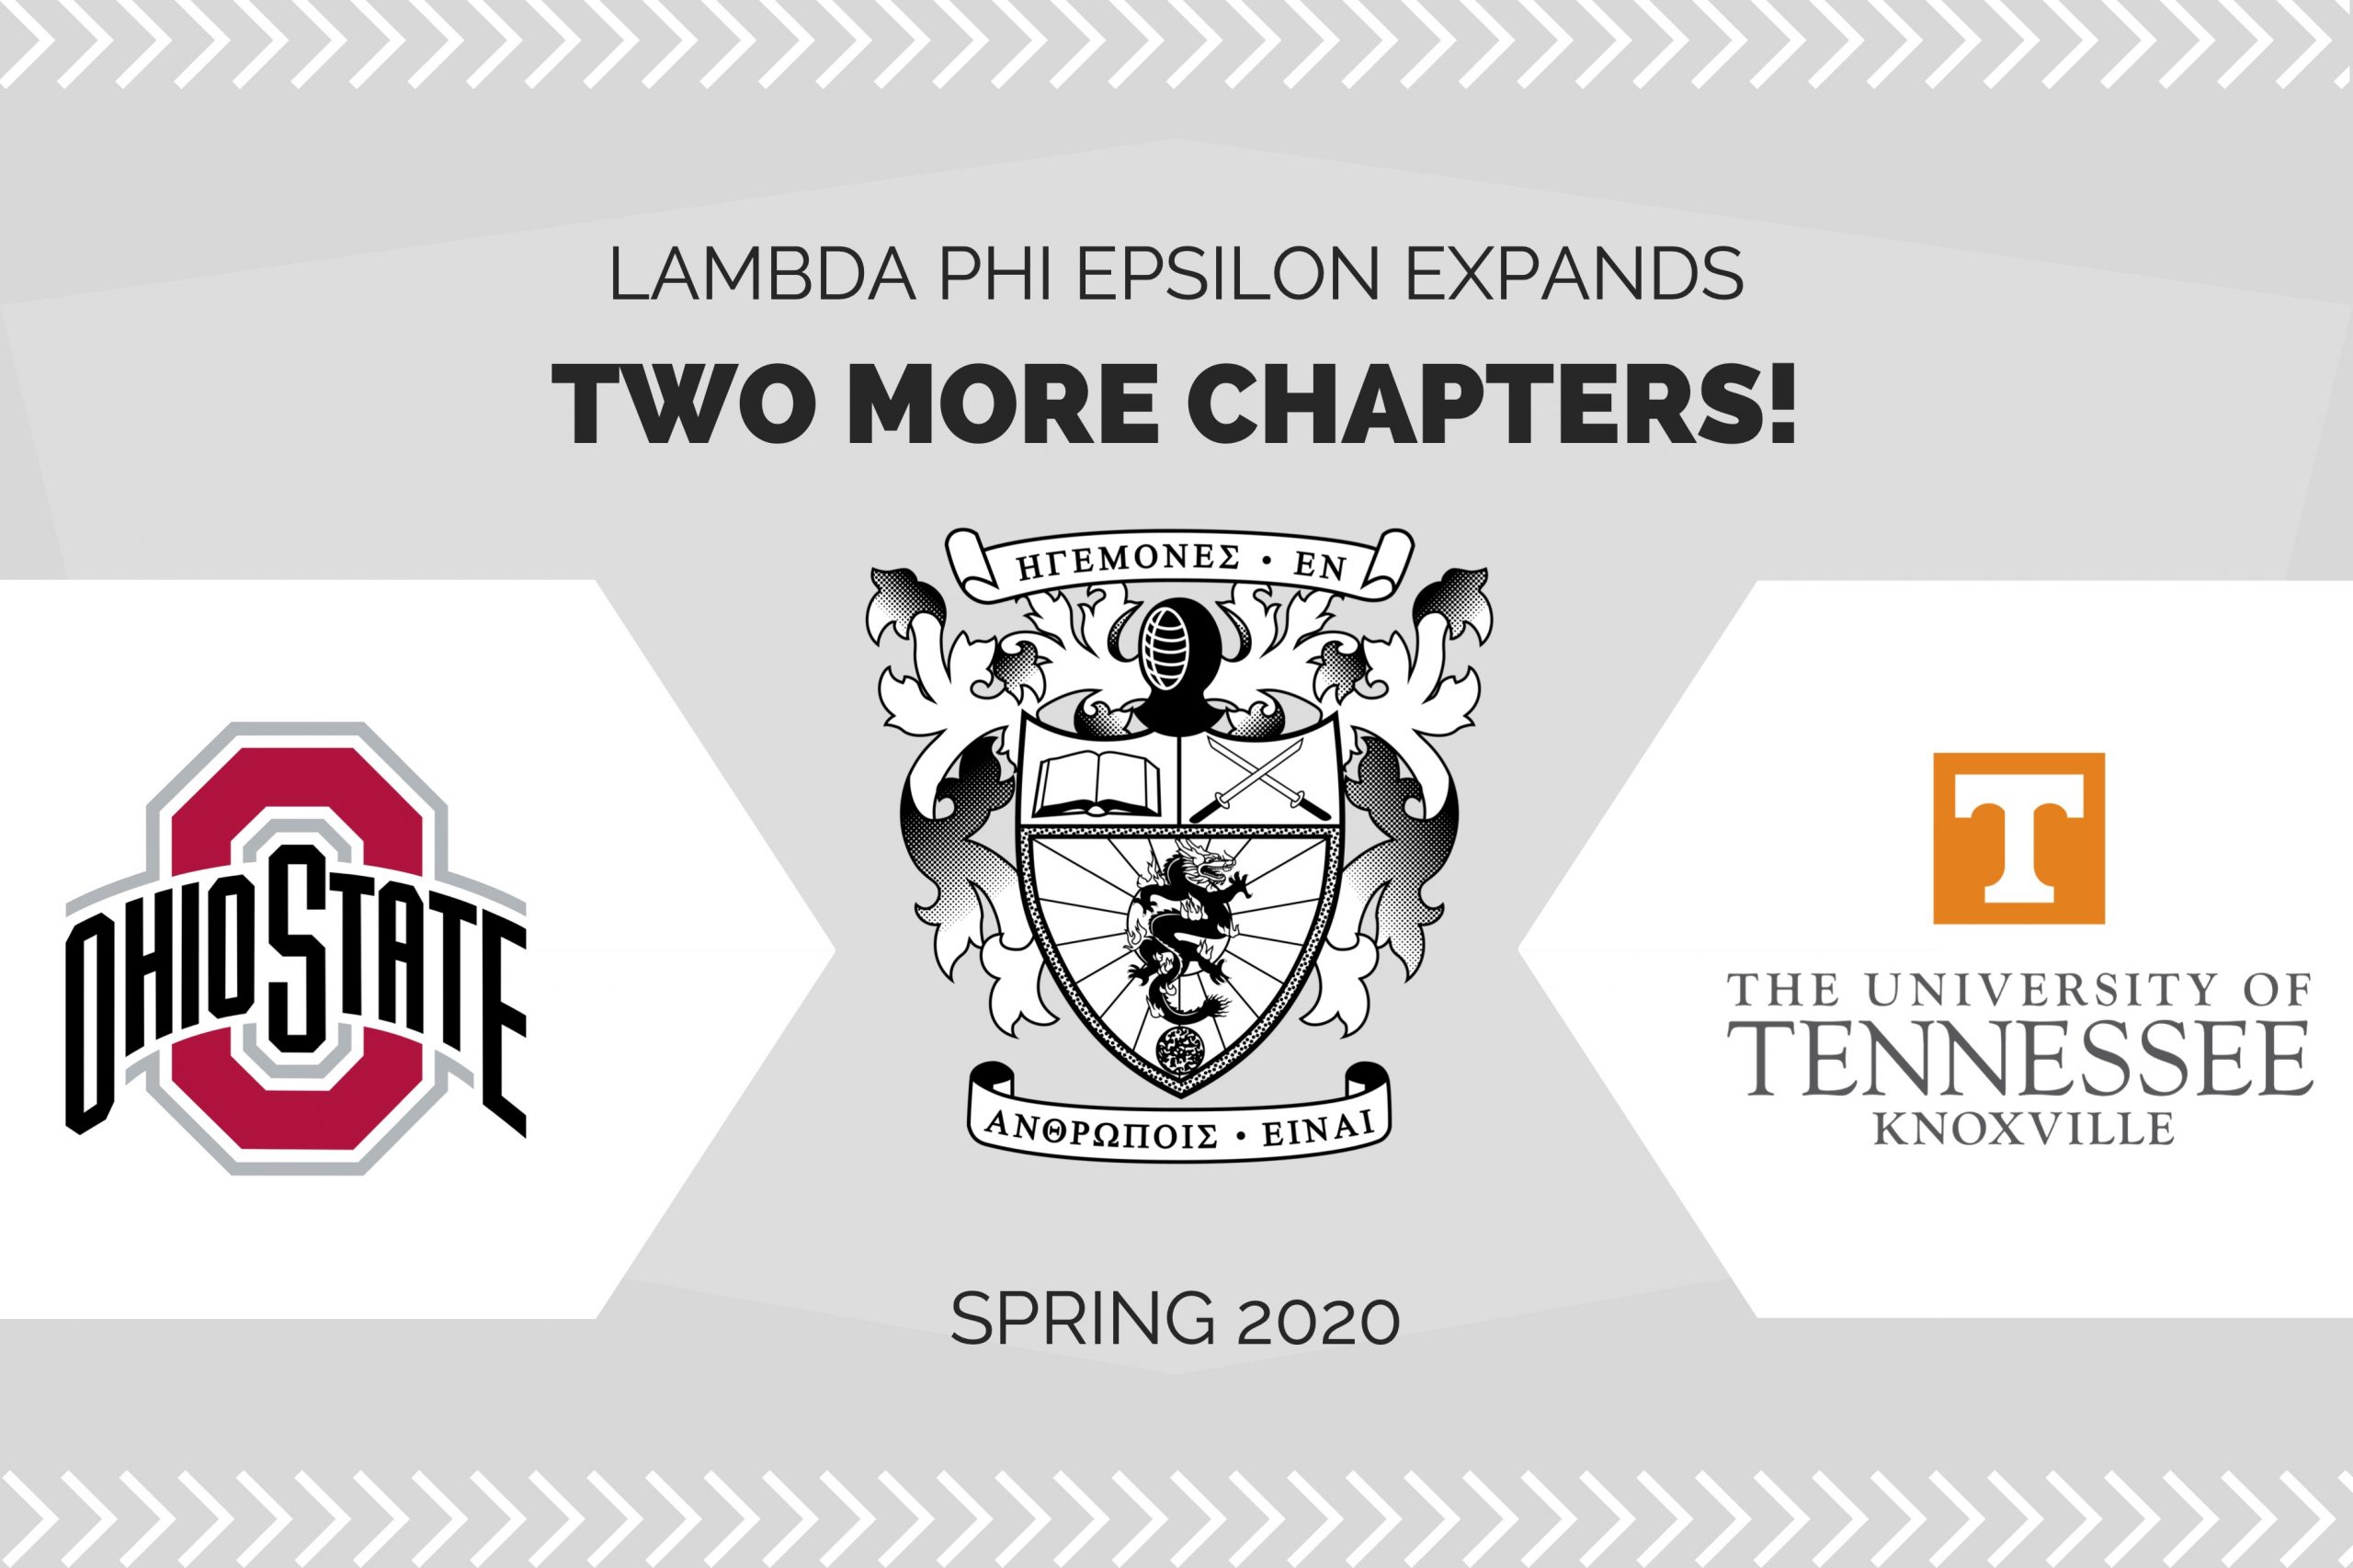 Expansion Announcement for OSU and UTK